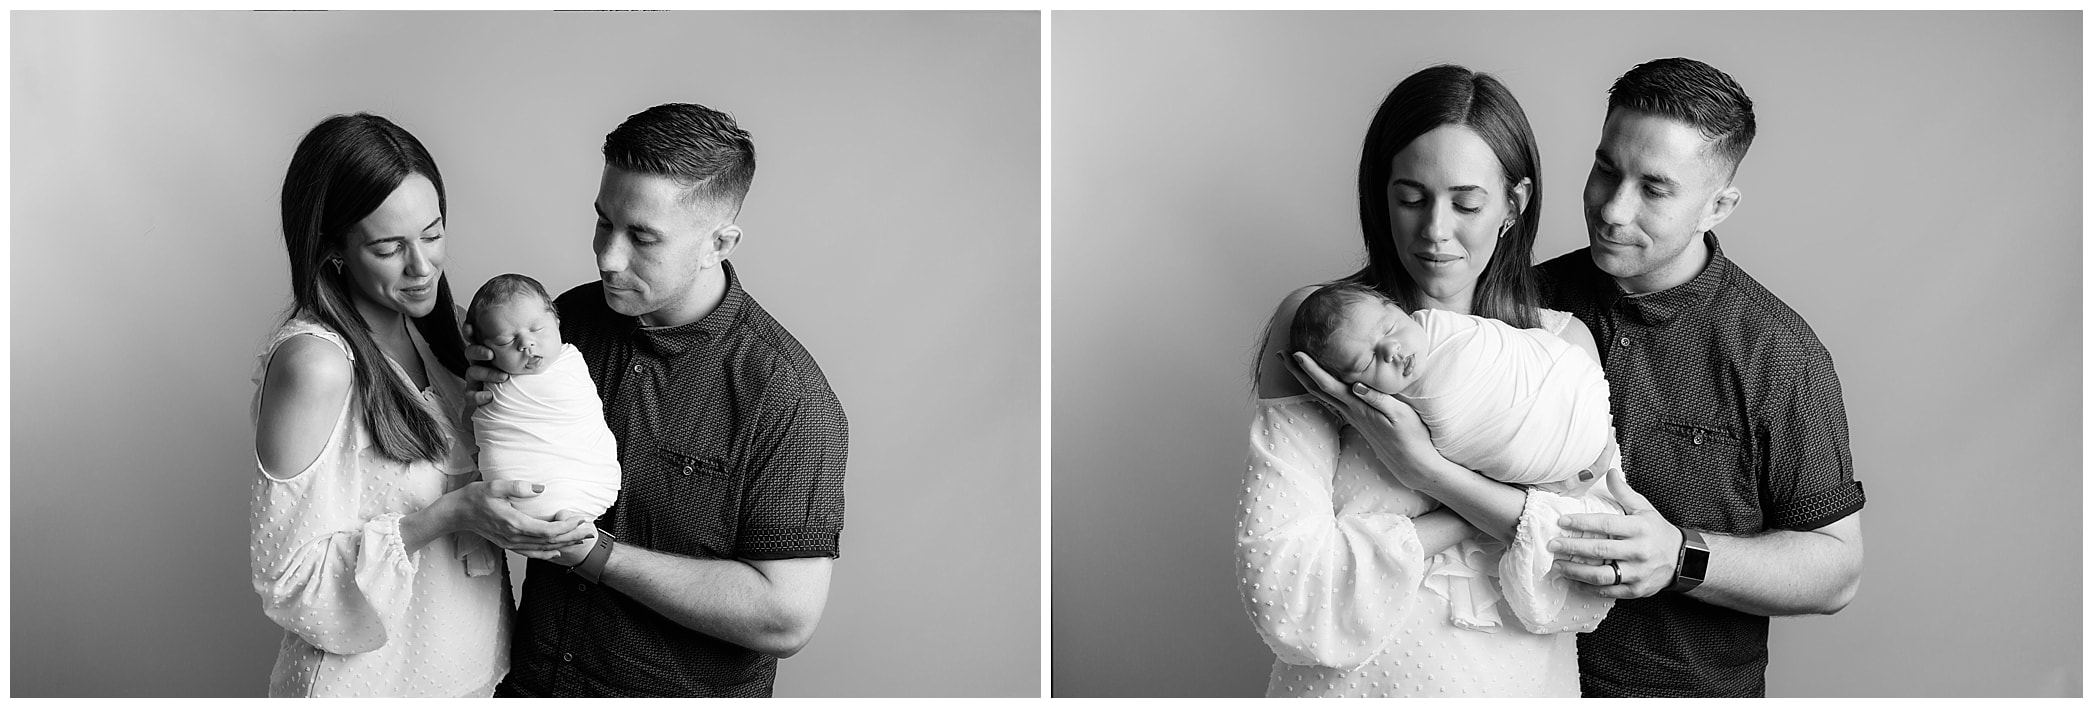 Black and White Parent Images with newborn by Lynne Harper Photography